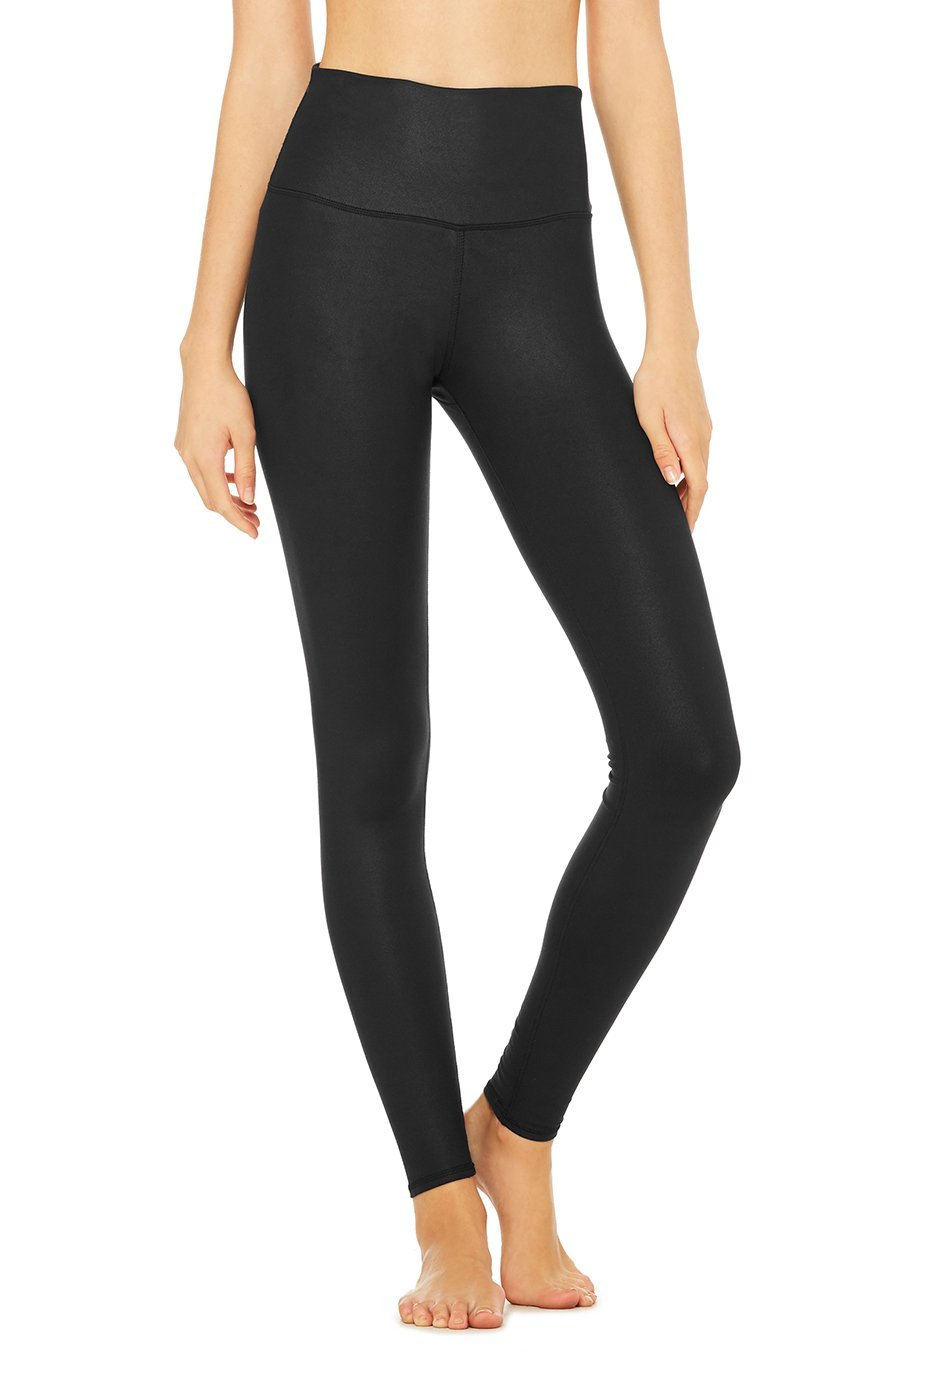 These are my new favorite yoga pants - Alo Yoga Air Lift Legging